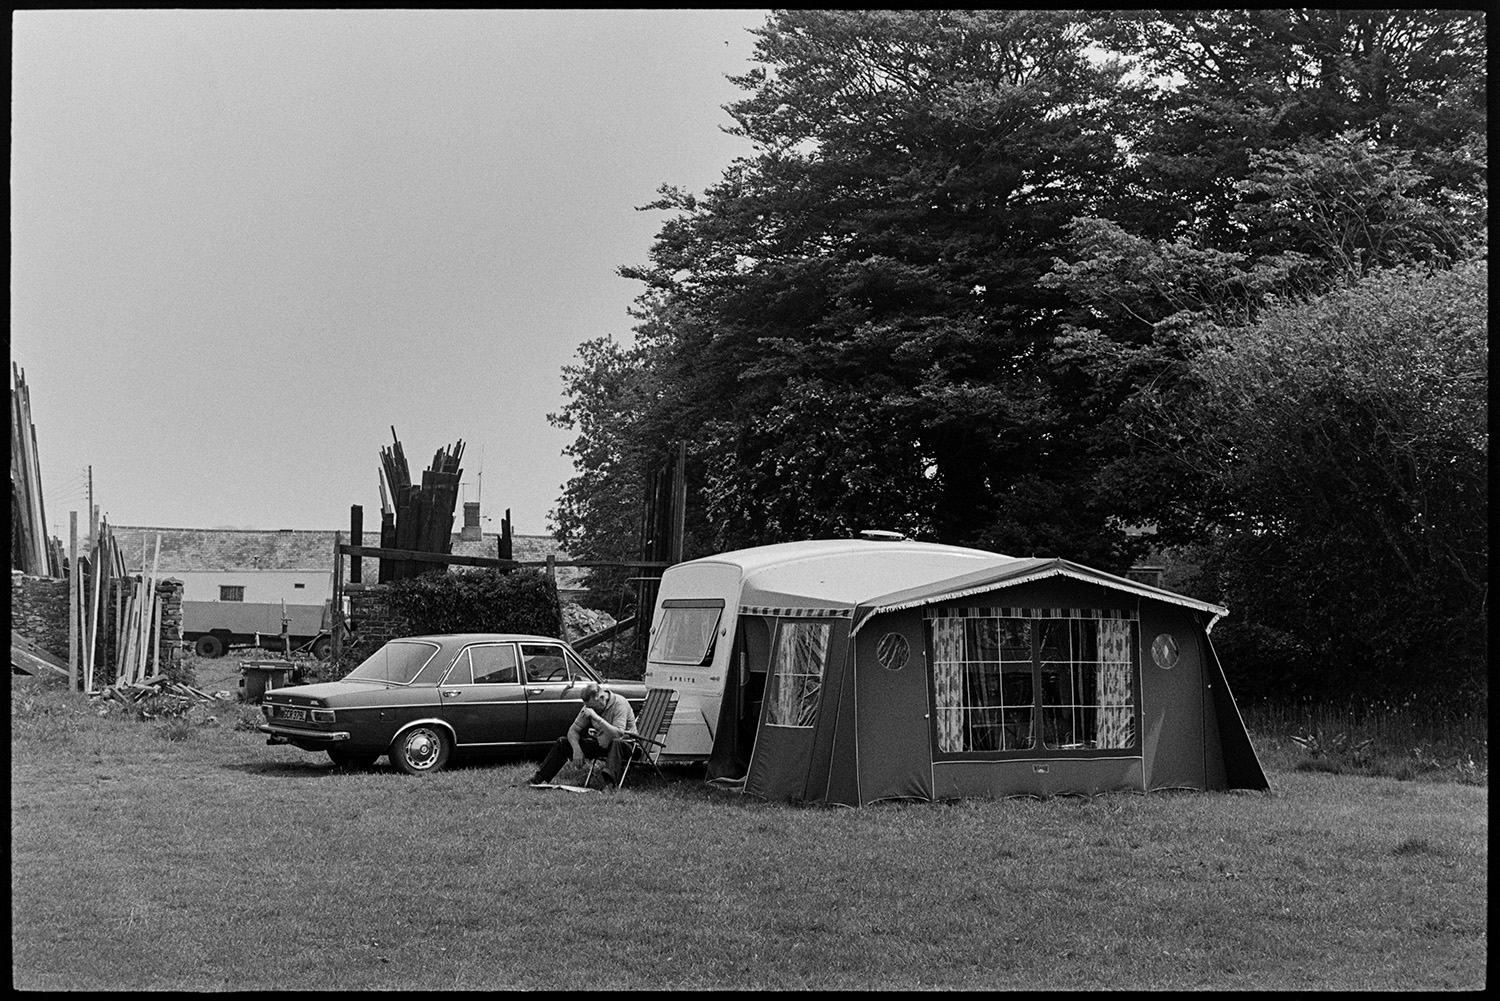 Caravan and tent on pub site. <br /> [A person sat outside a caravan with an awning next to a parked car in the grounds of the Royal Oak pub, Dolton.]